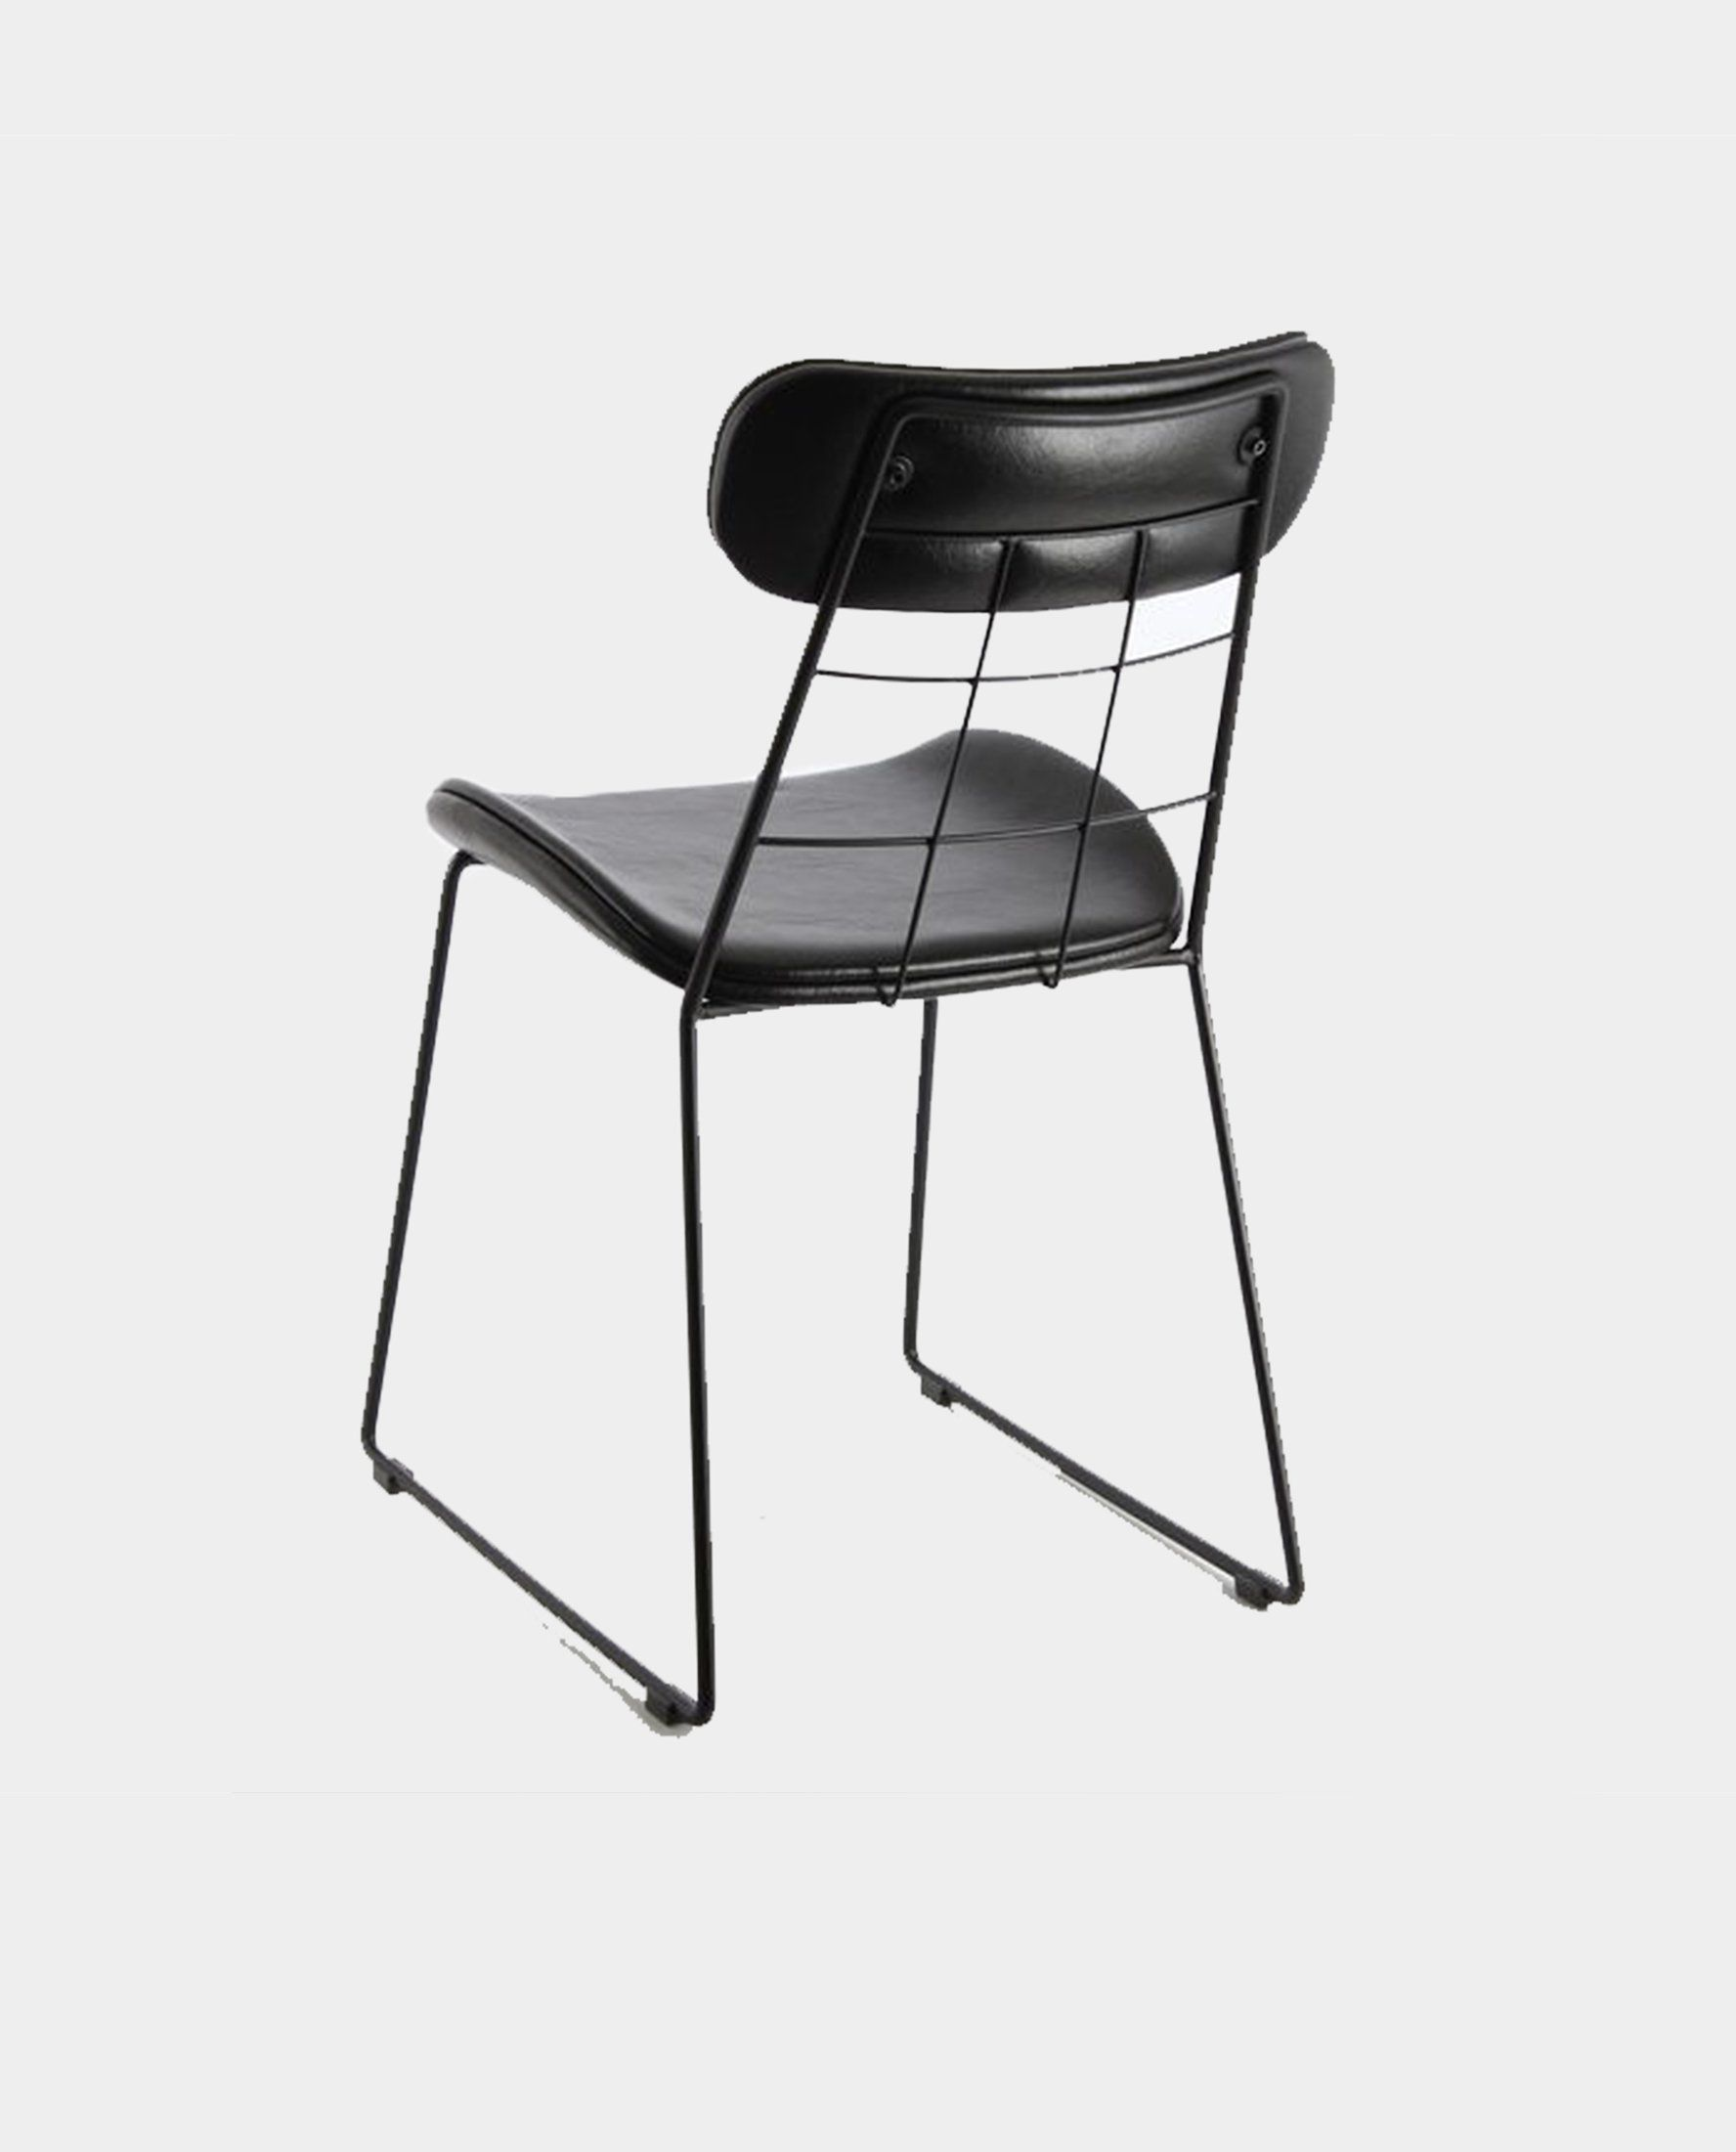 Sessel Lucas Stuhl Lucas Der Richtige Sessel Mix Aka Mismatched Chairs In